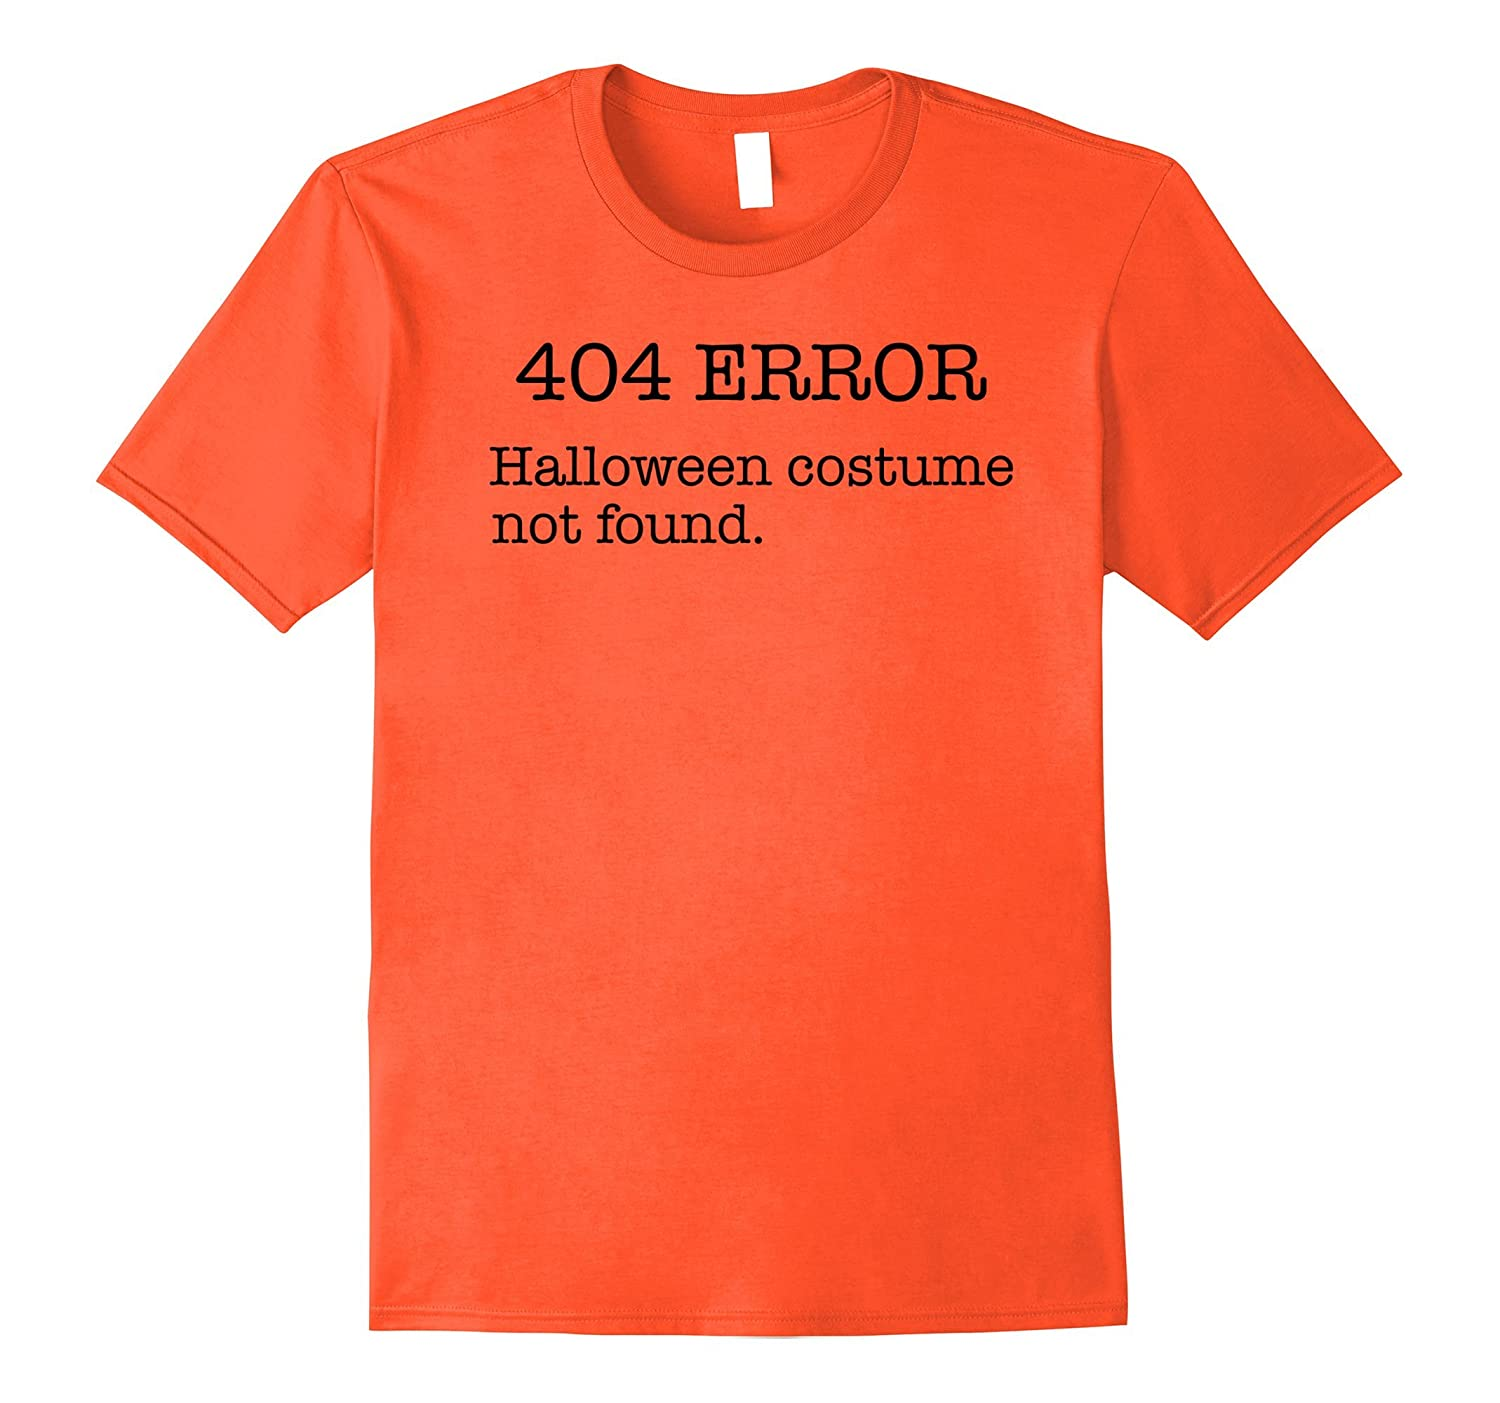 404 Error Halloween Costume Not Found - Computer Geek Shirt-TJ